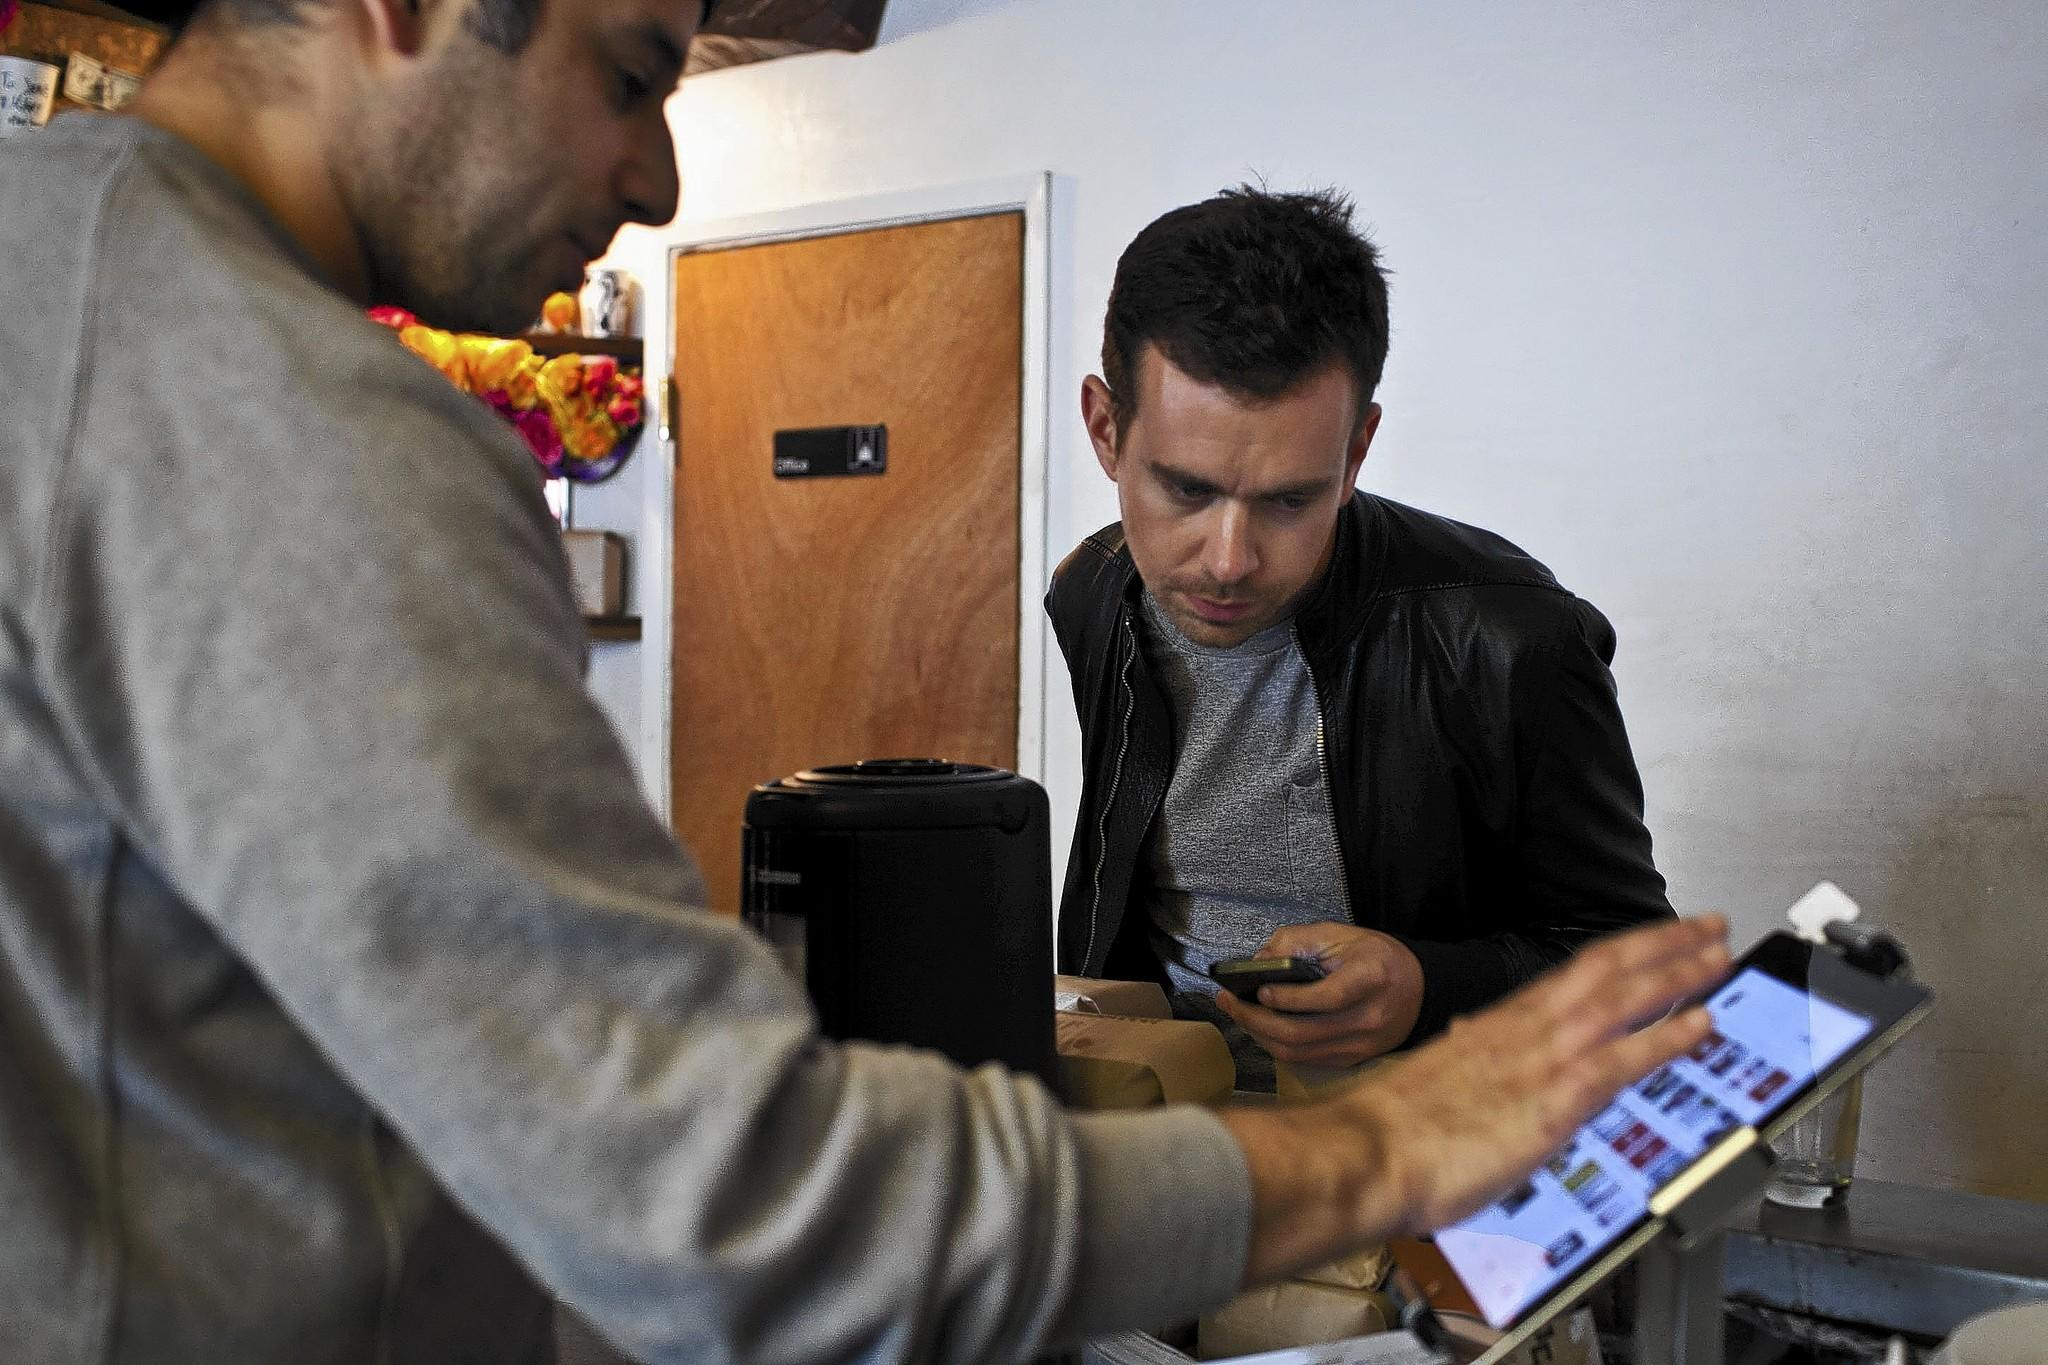 Square Chief Executive Jack Dorsey, right, uses his company's mobile payment tool at a cafe in San Francisco in 2012.